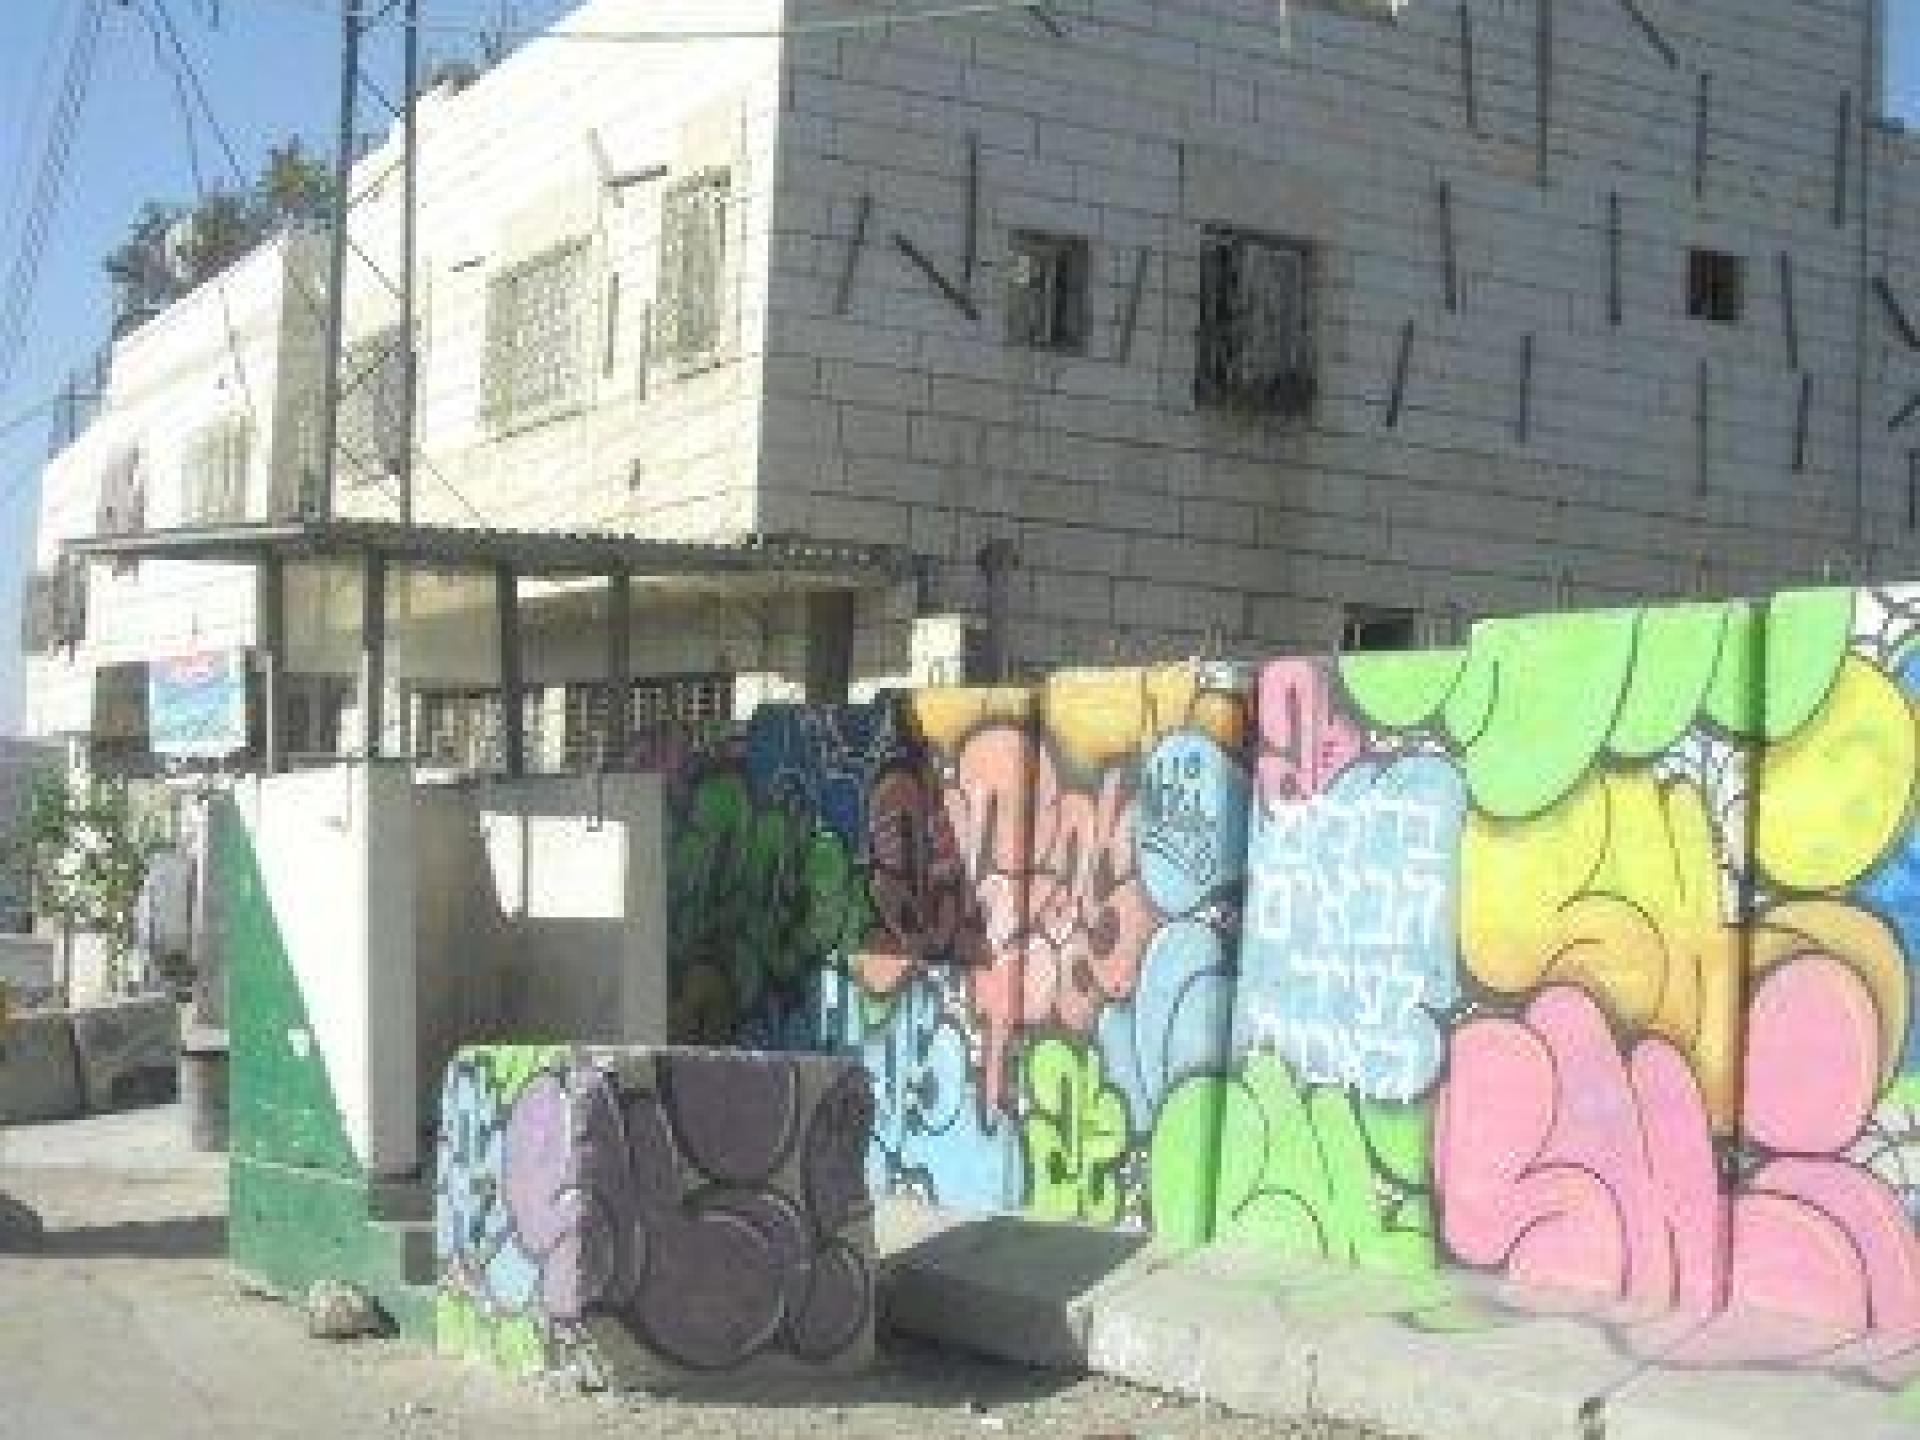 Checkpoint 160, Hebron 13.09.11